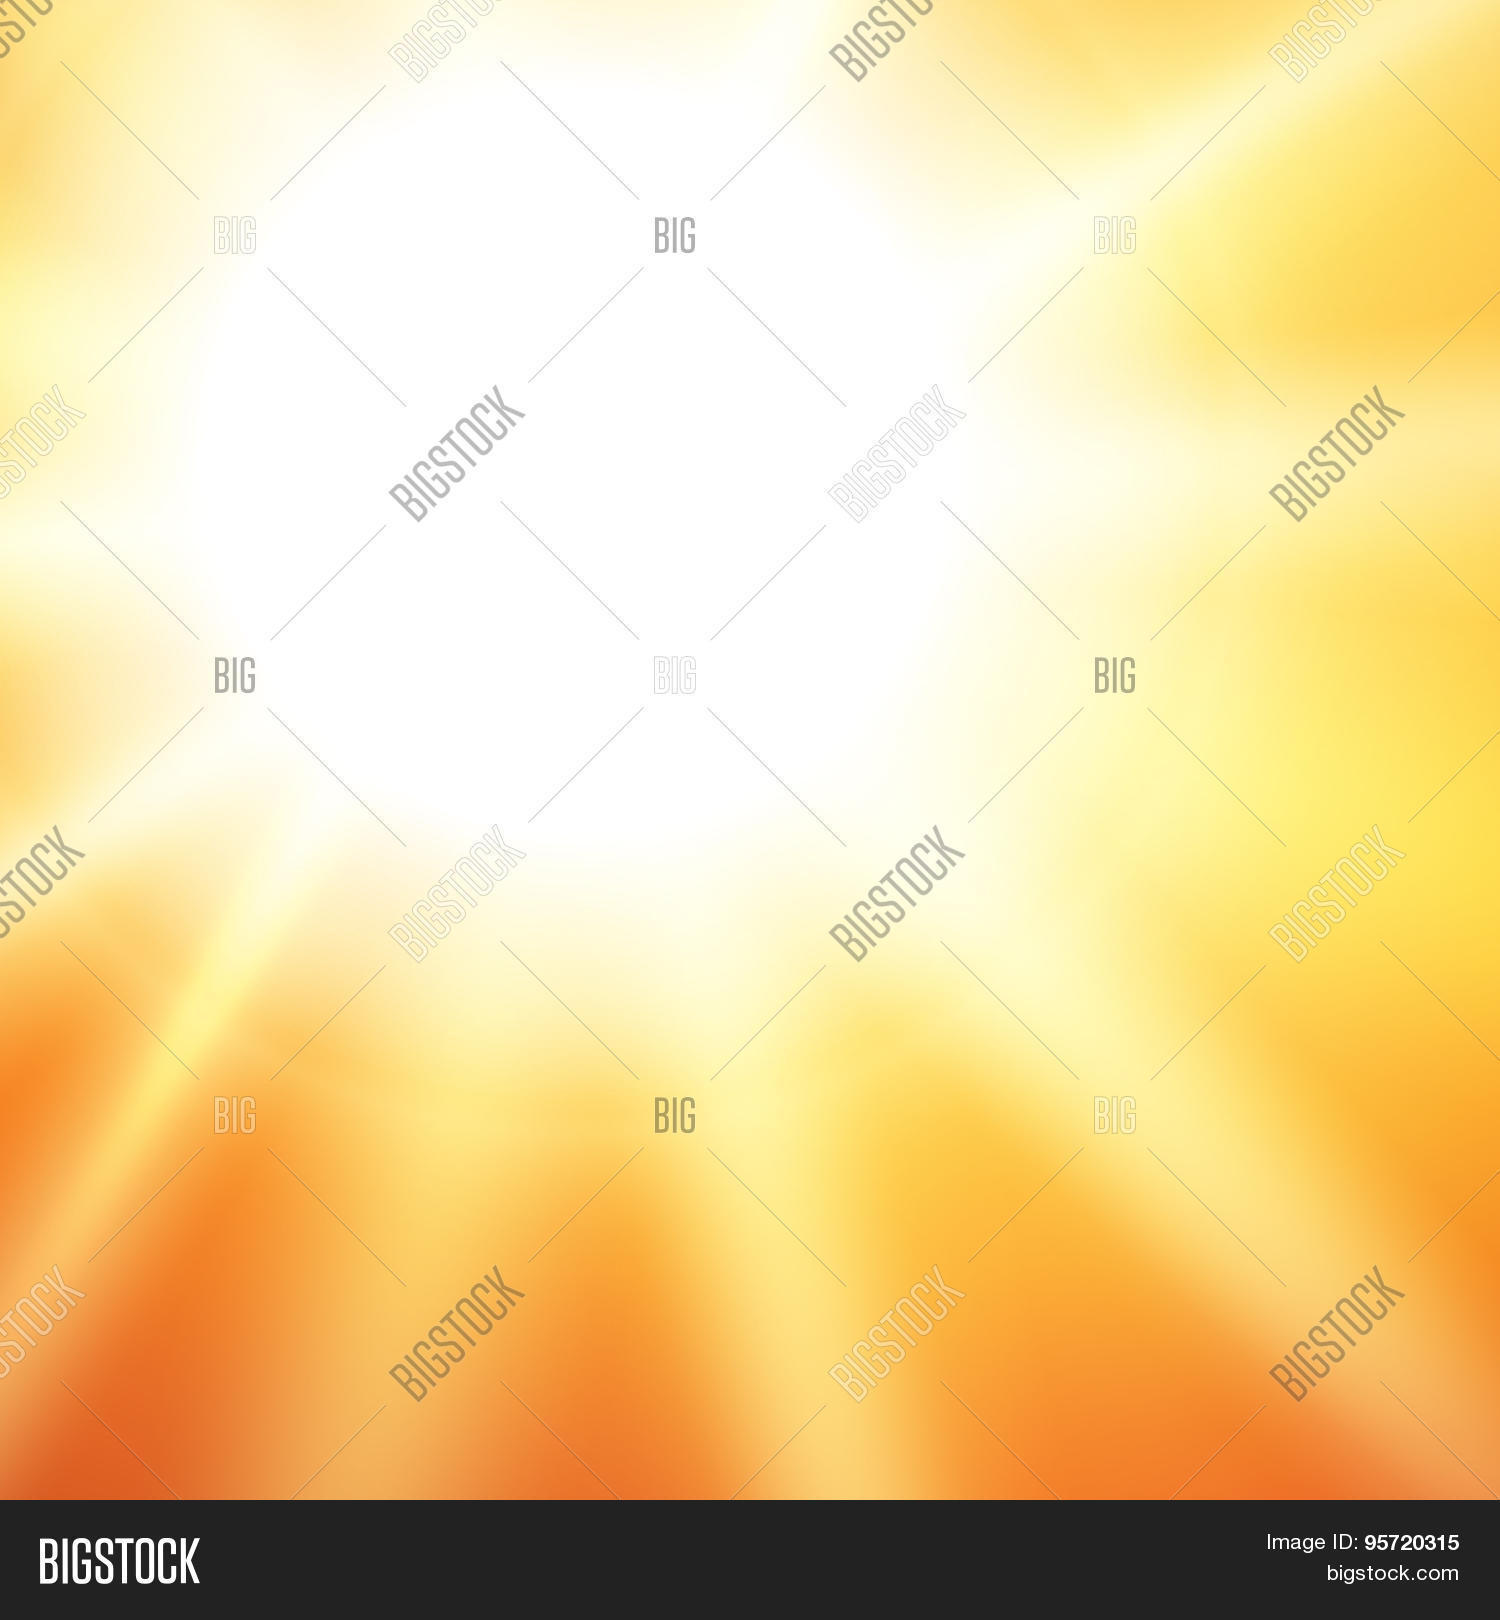 The sun at its zenith - what does this expression mean? How to understand that the sun is at its zenith 80